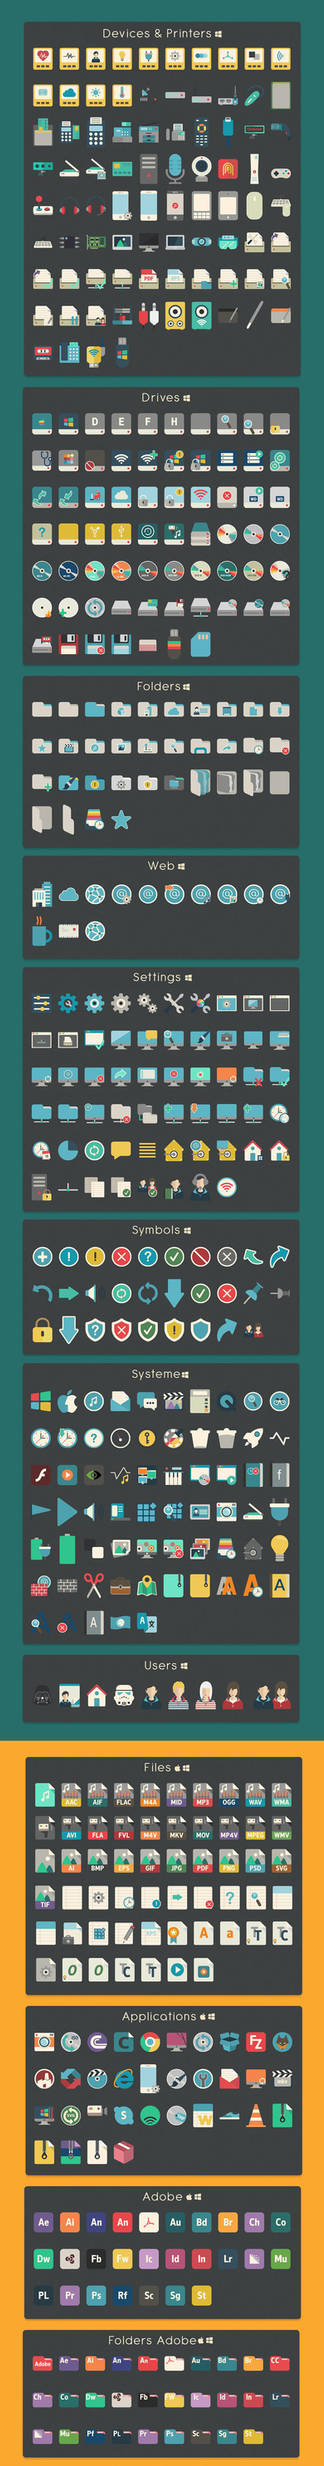 iConadams 700 icons for Windows and Mac by valvator